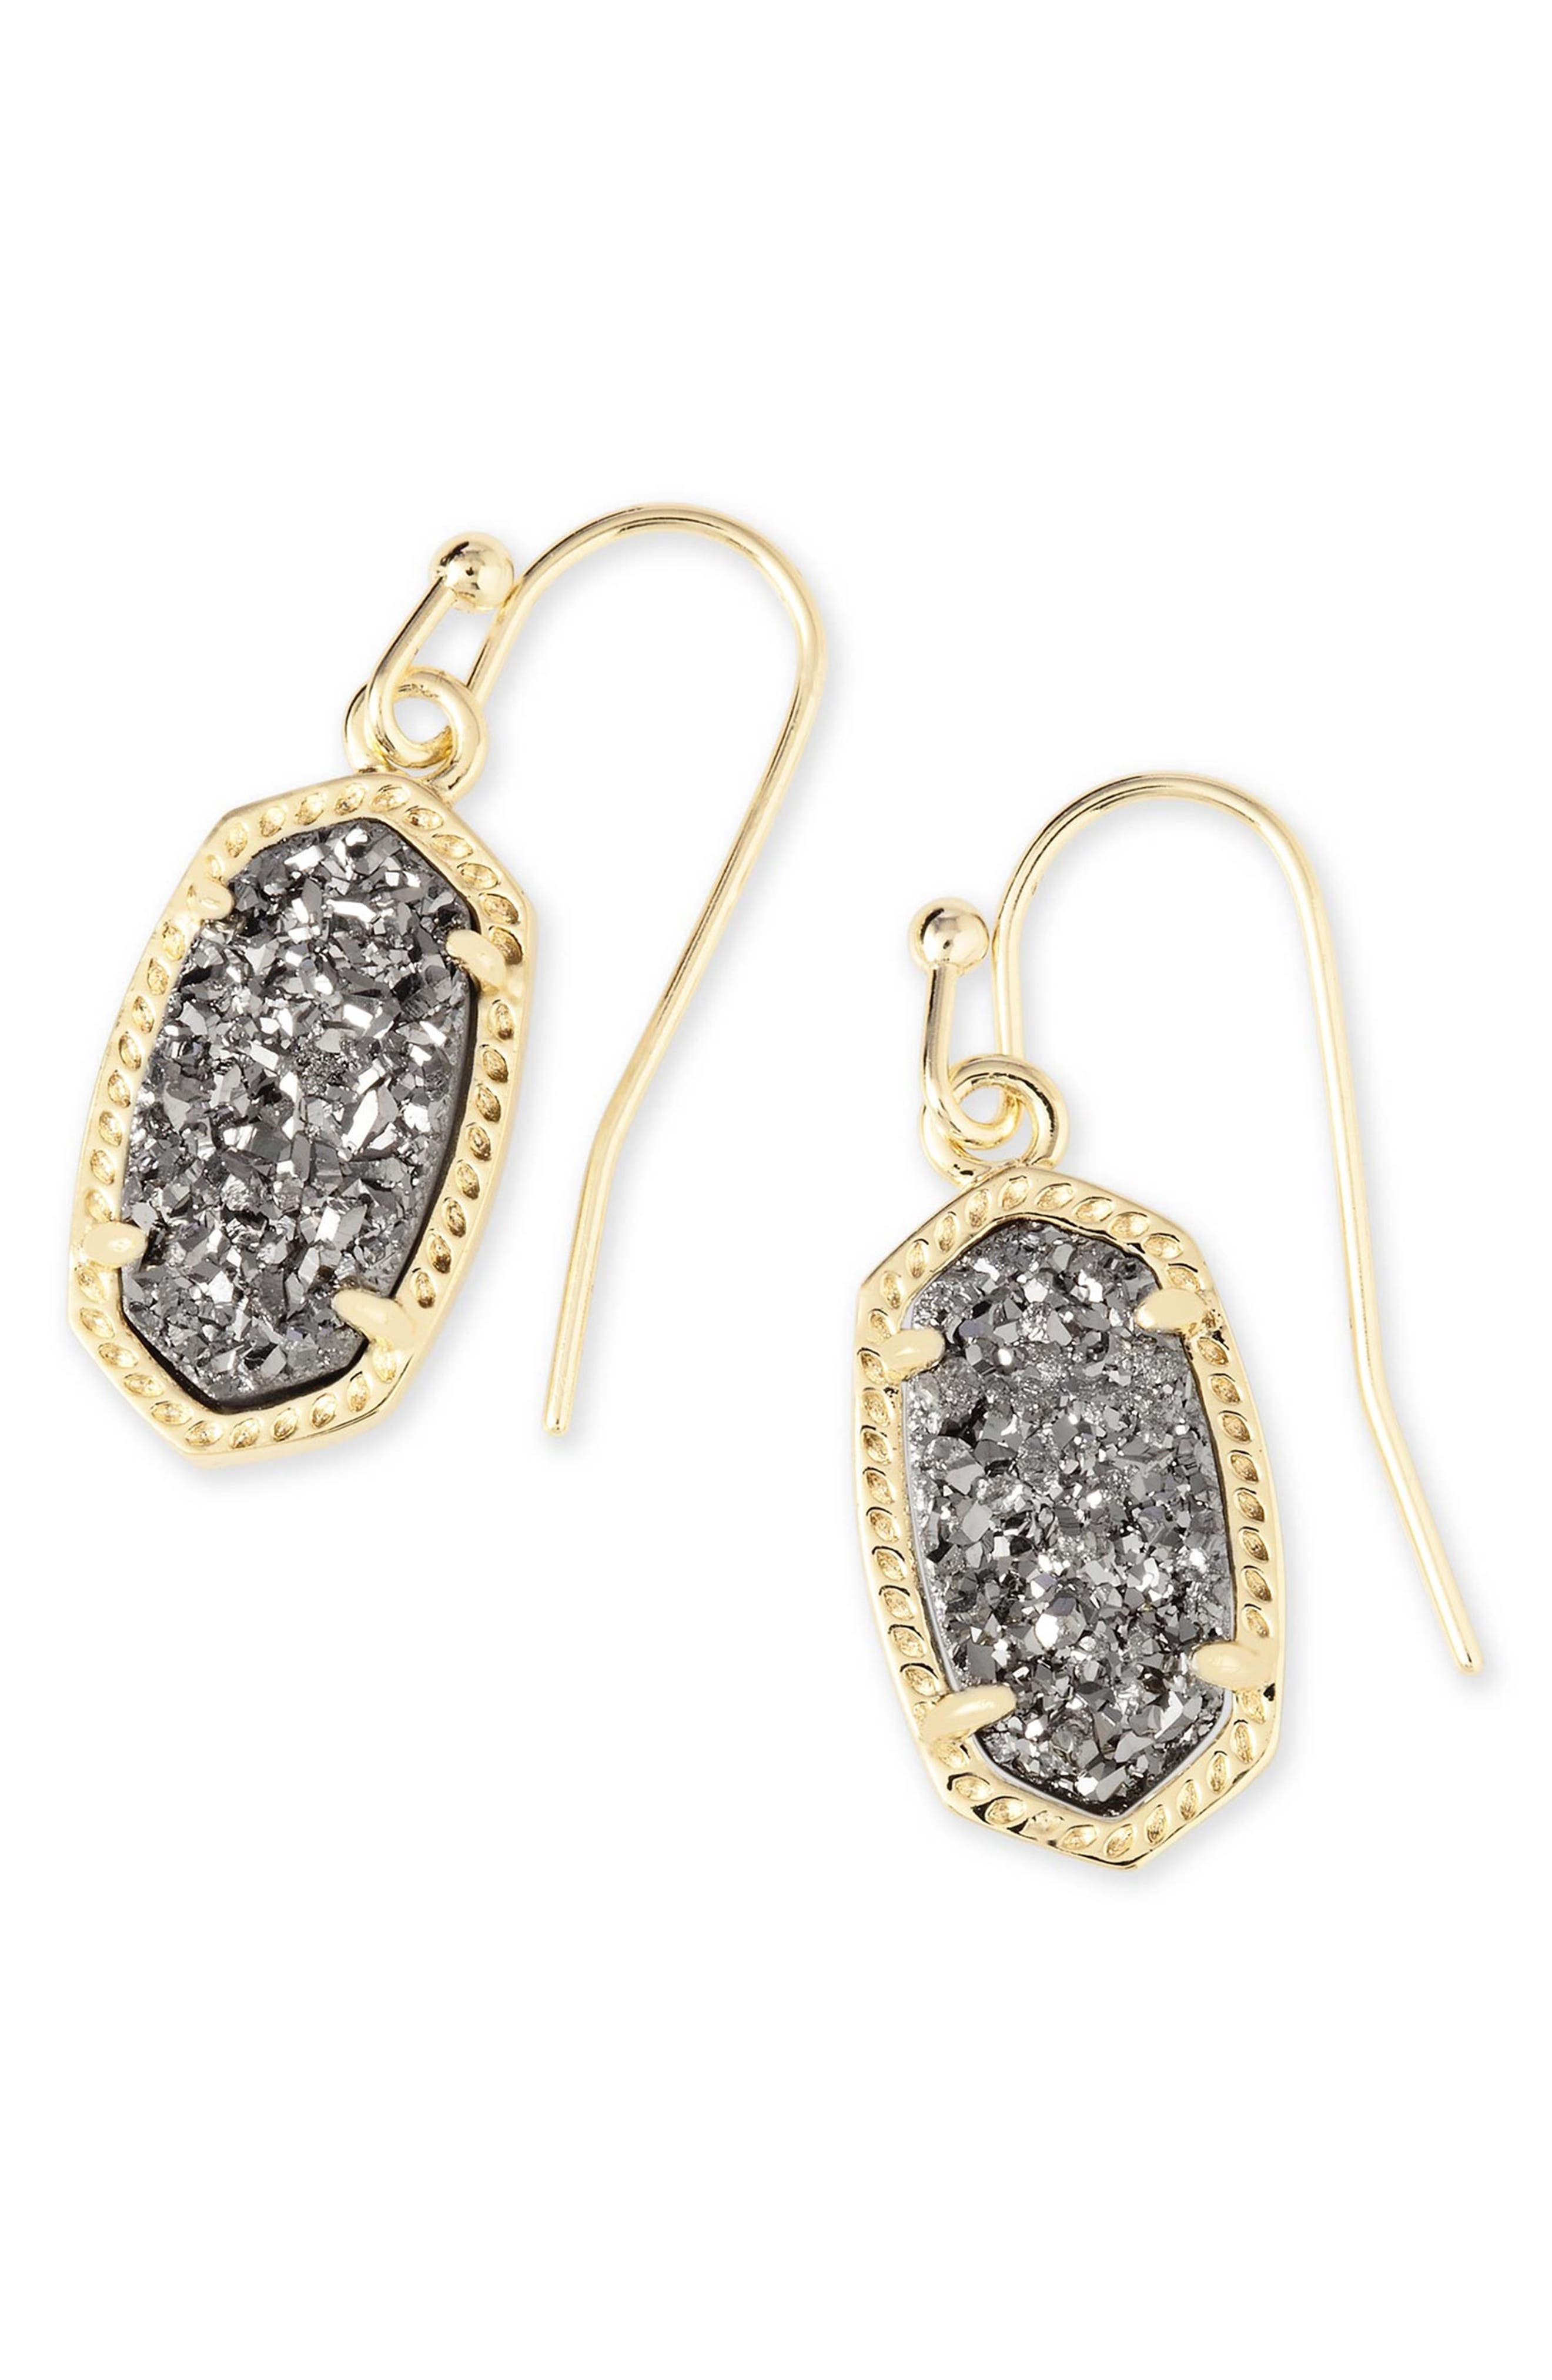 KENDRA SCOTT Lee Small Drop Earrings, Main, color, PLATINUM DRUSY/ GOLD